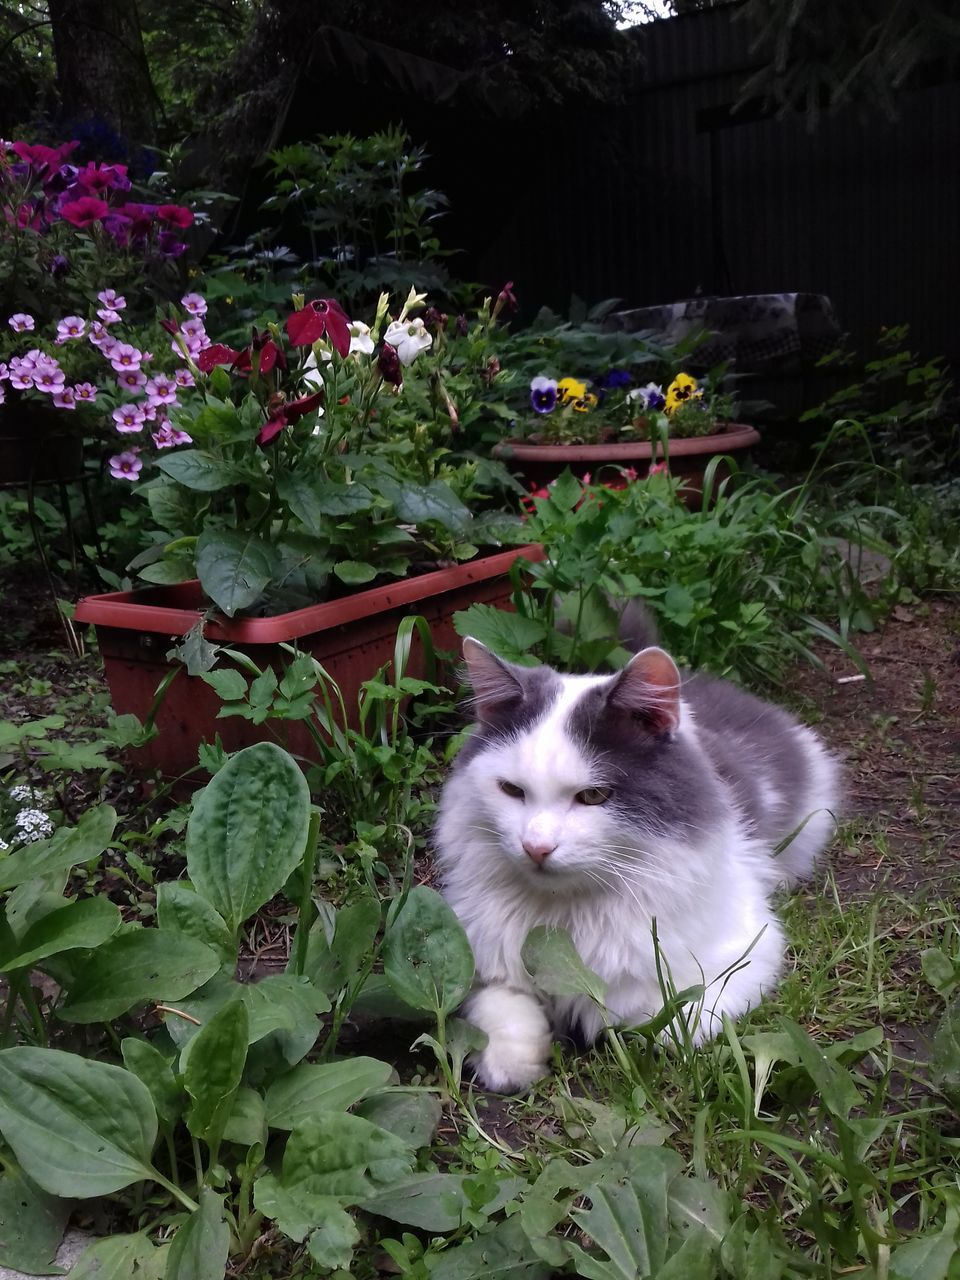 domestic cat, plant, animal themes, feline, pets, cat, domestic animals, mammal, one animal, flower, nature, growth, no people, grass, outdoors, leaf, day, portrait, sitting